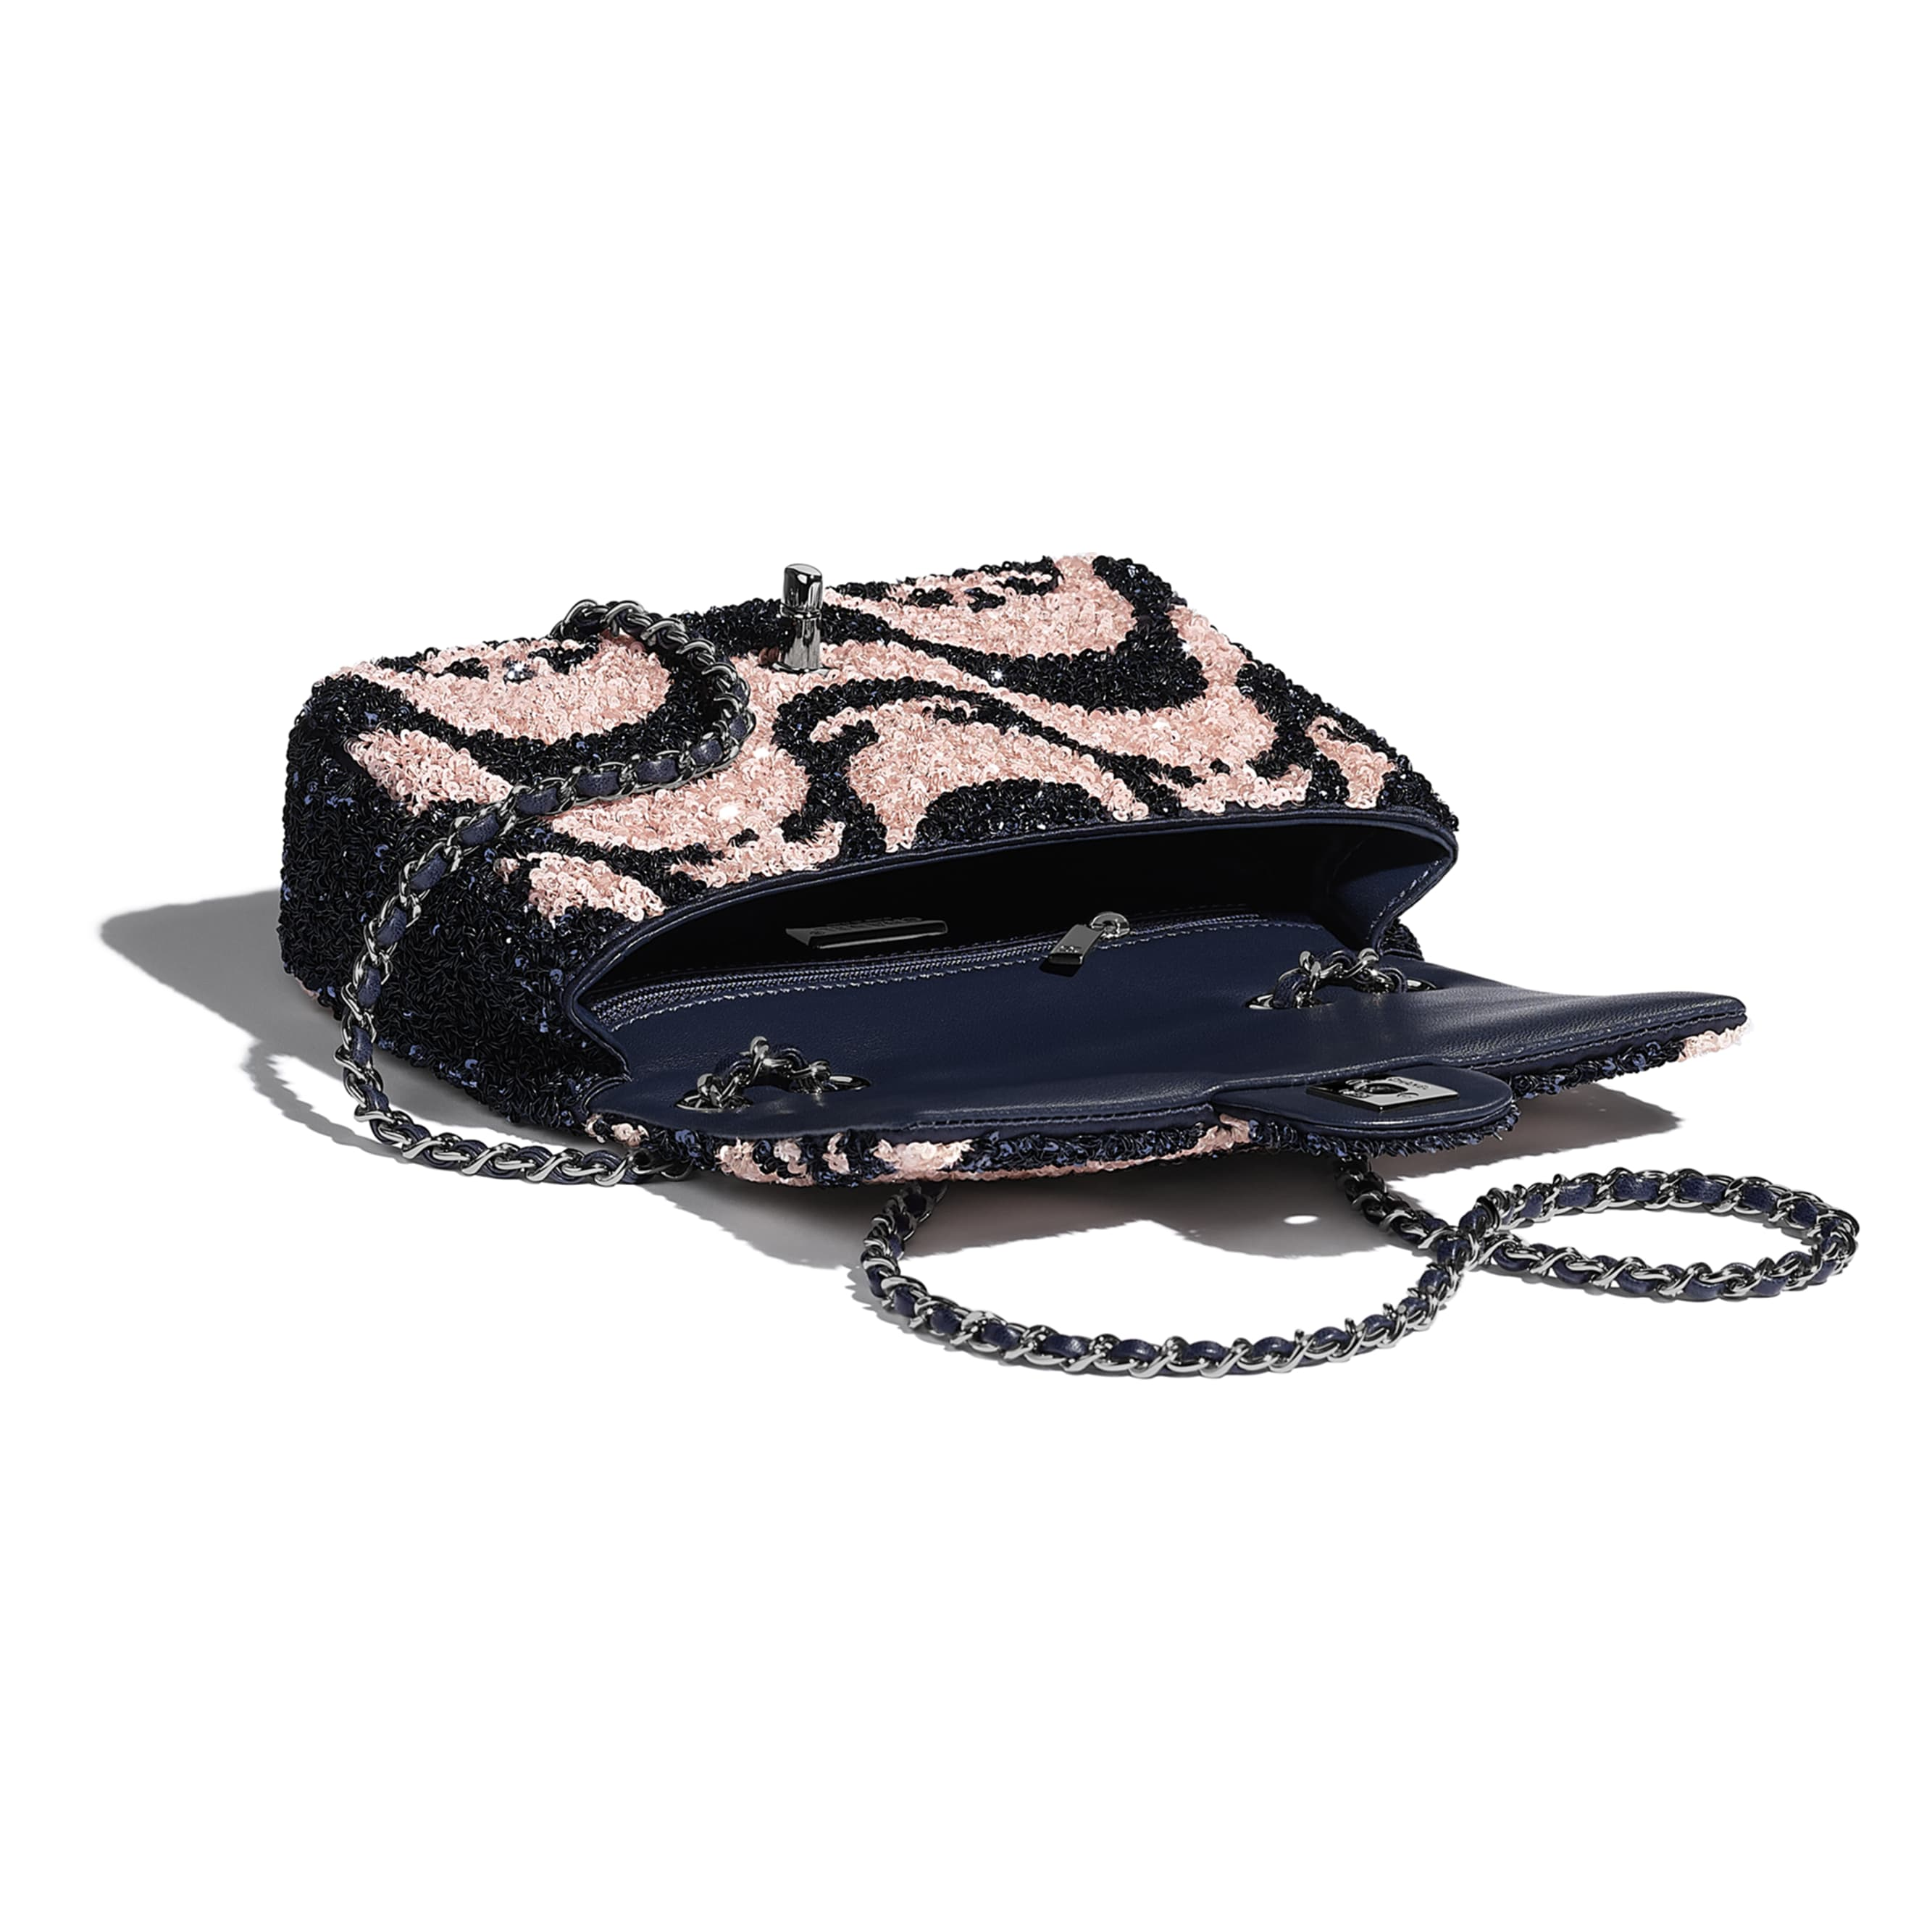 Small Flap Bag - Navy Blue & Pink - Sequins & Ruthenium-Finish Metal - CHANEL - Other view - see standard sized version